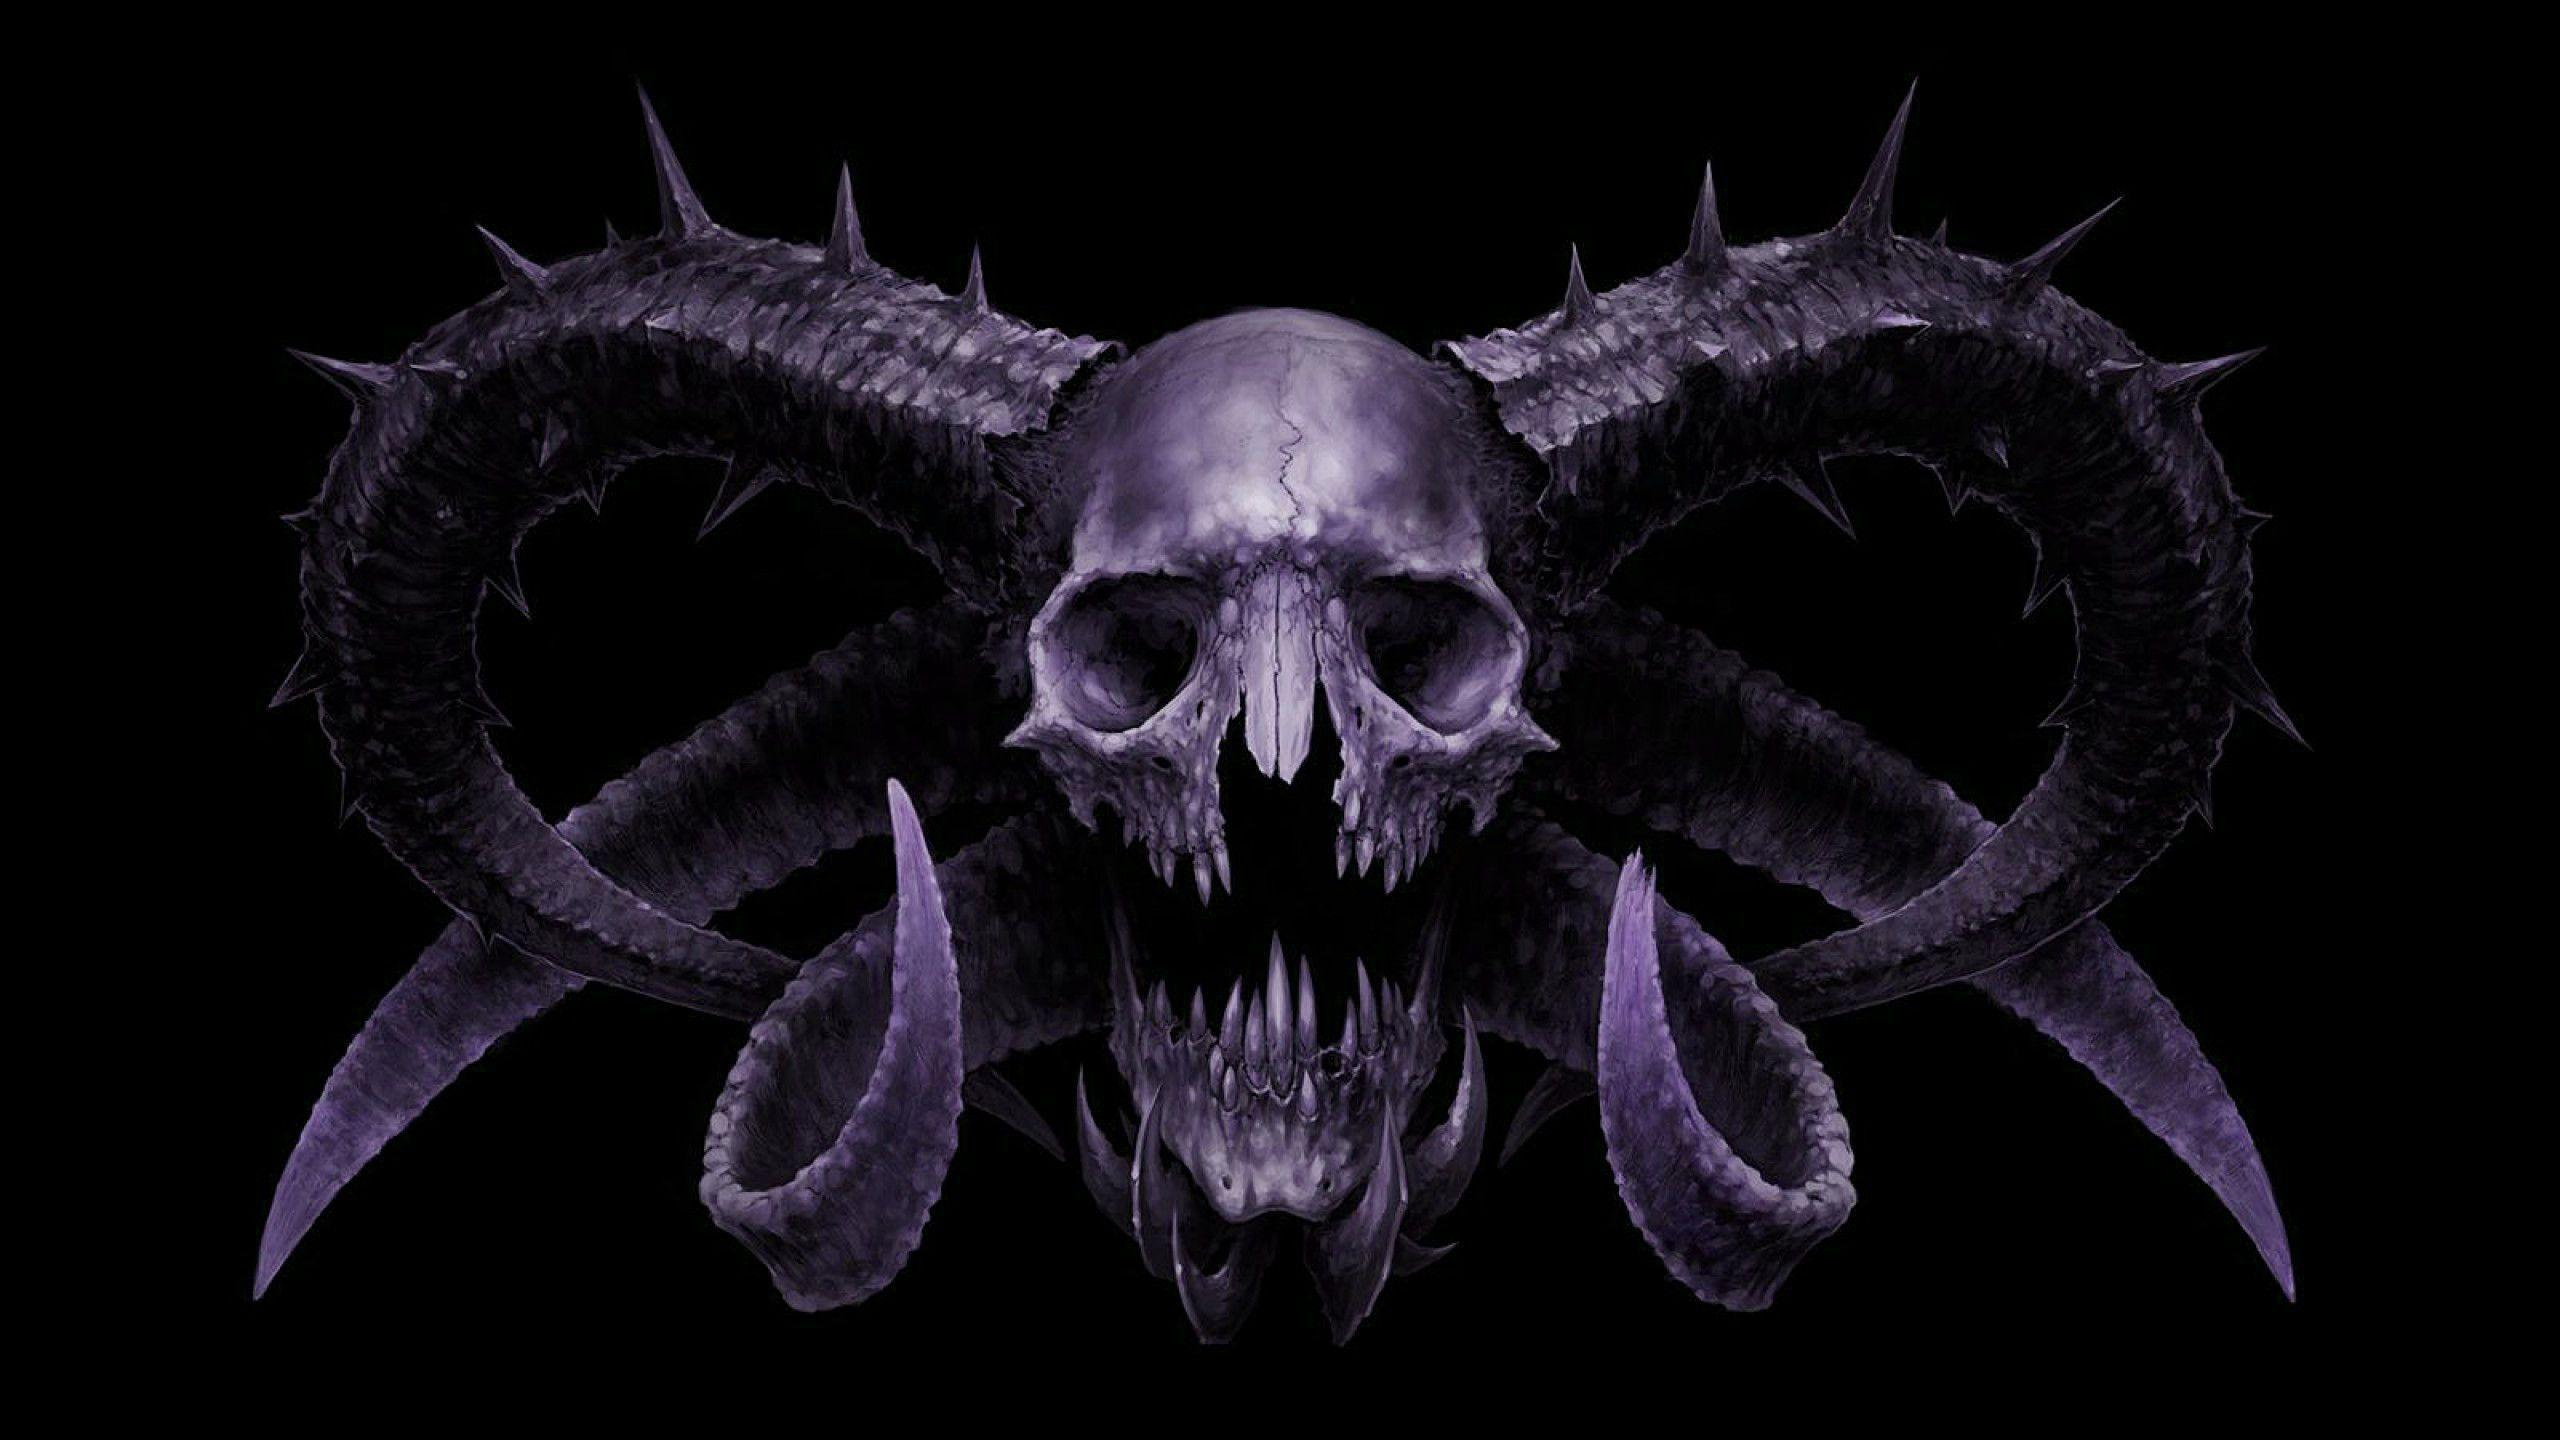 Must see Wallpaper High Resolution Skull - oHigspi  You Should Have_207843.jpg